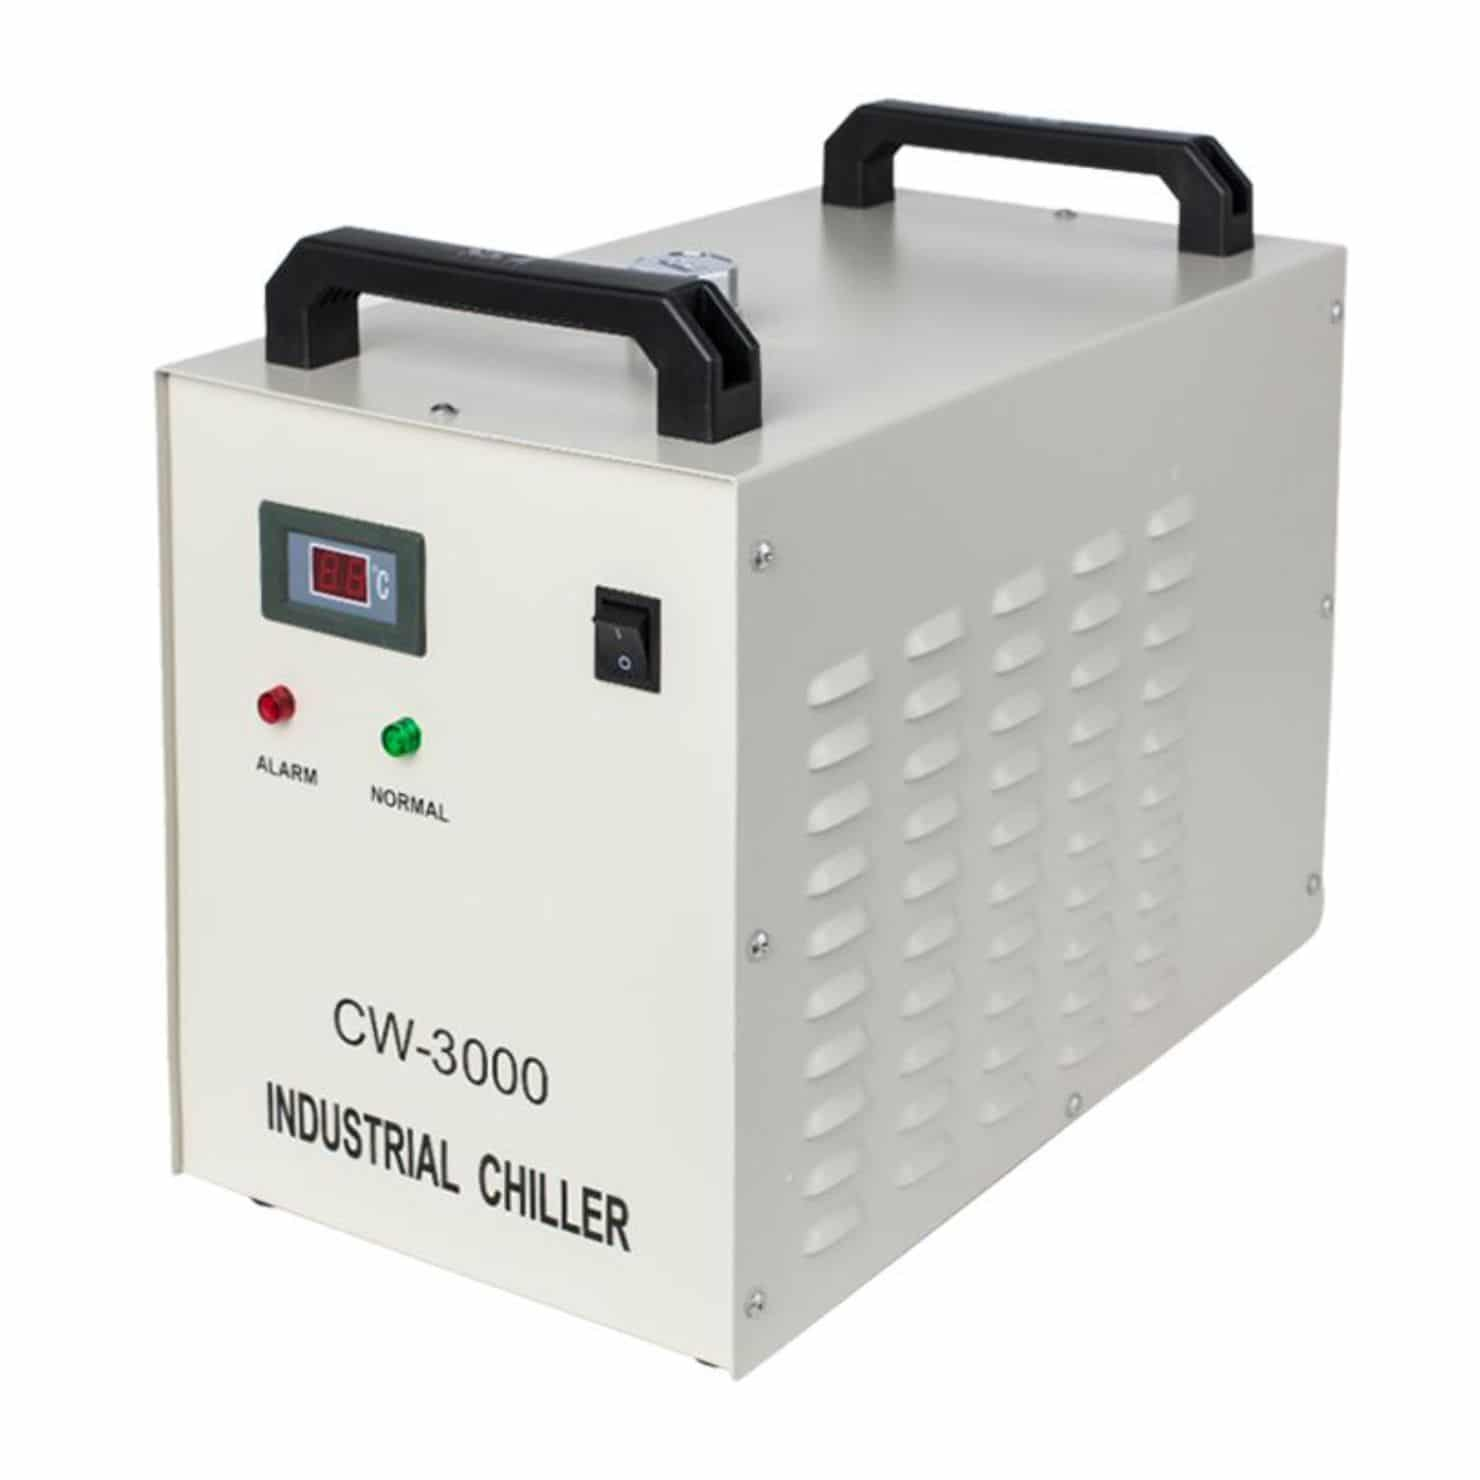 chiller cw 3000